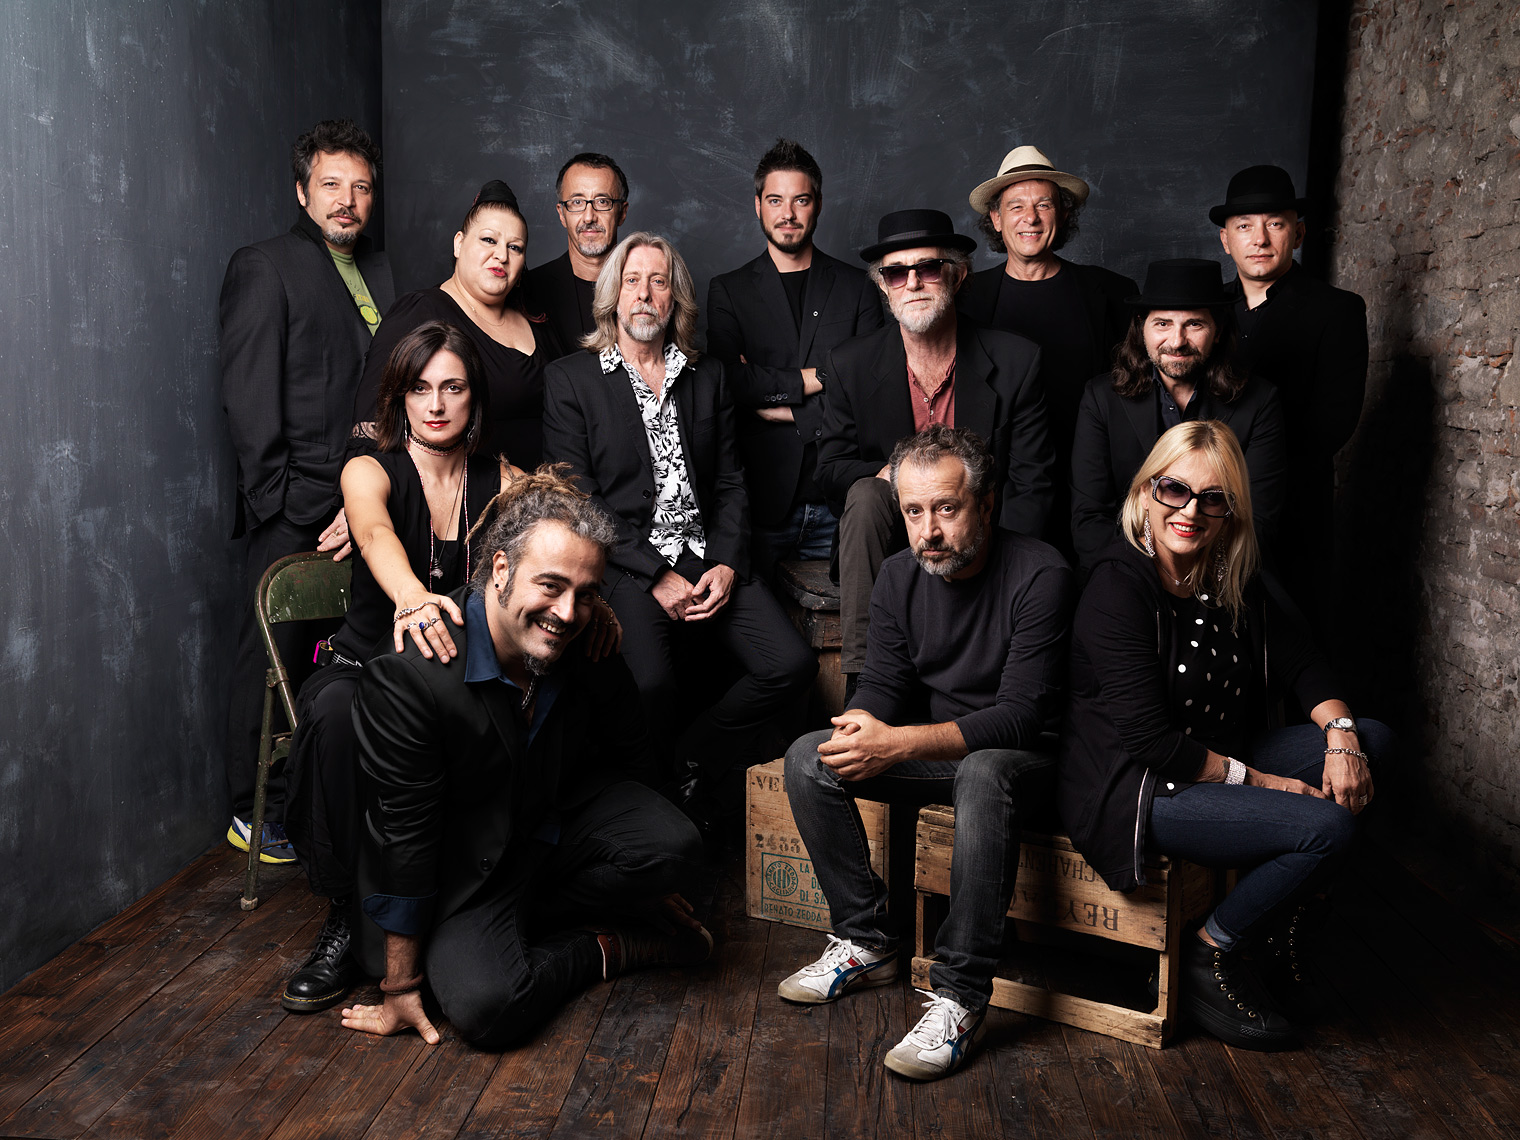 FRANCESCO DE GREGORI & BAND